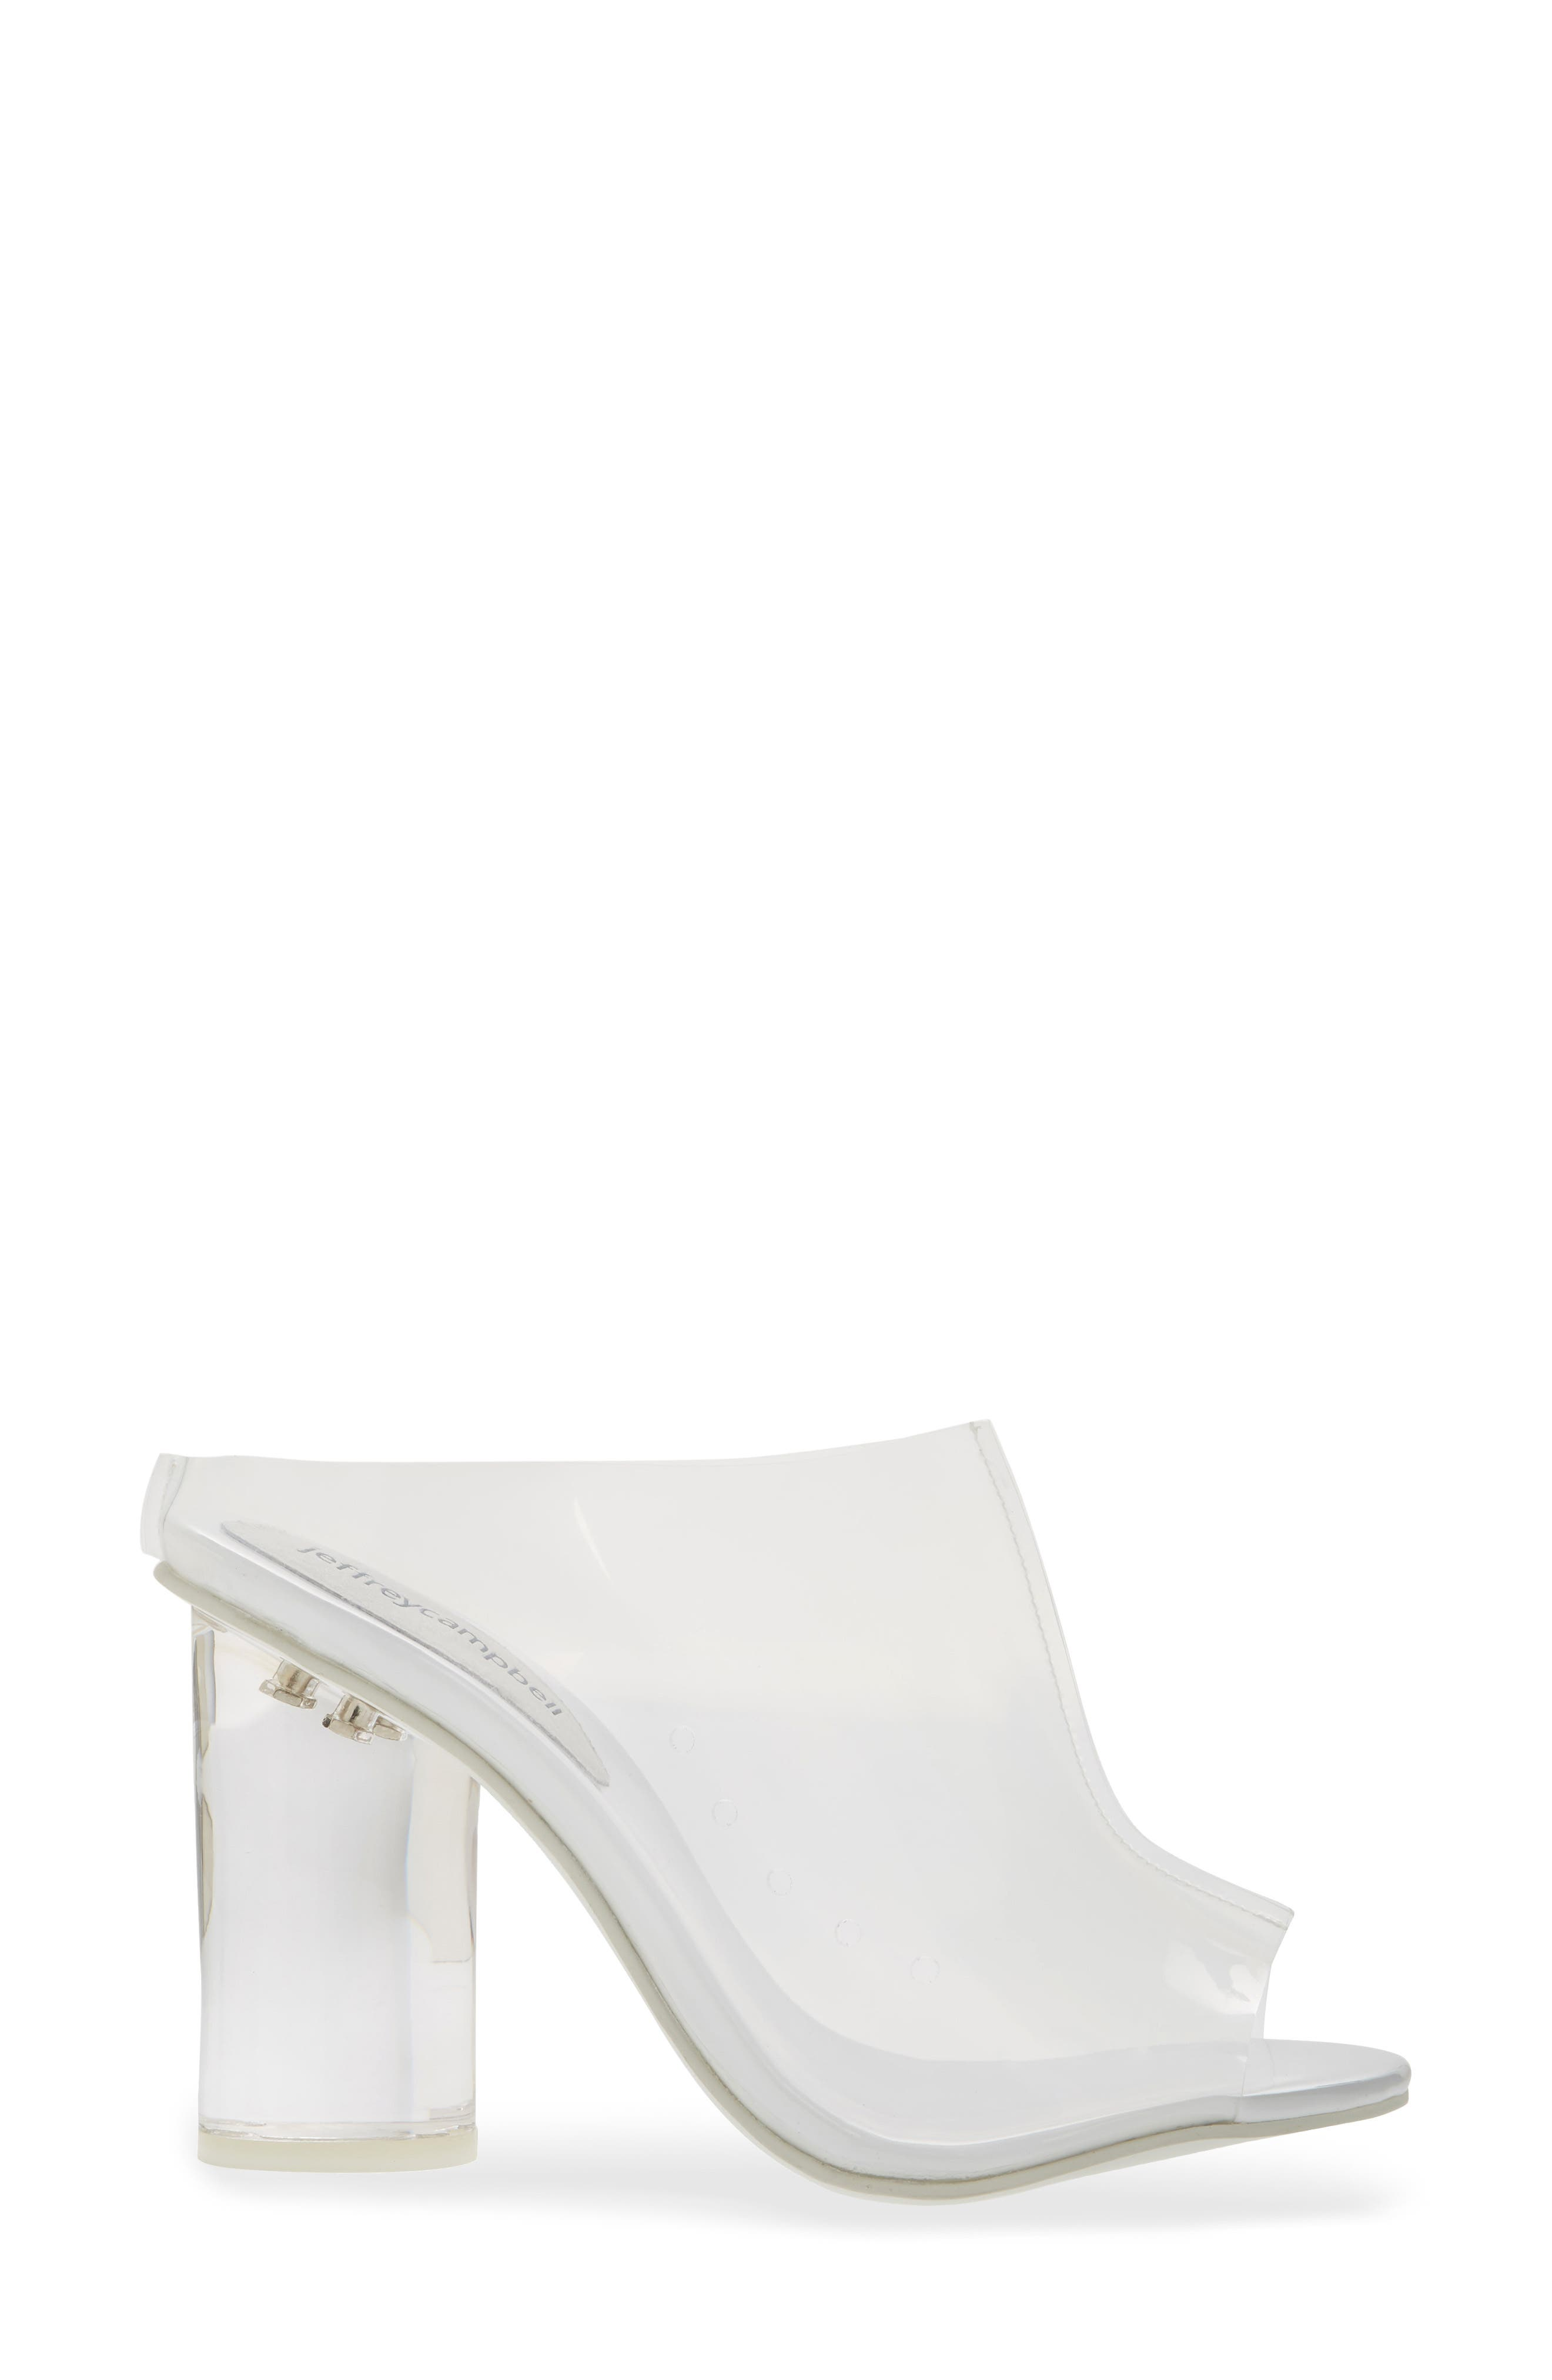 Divinity Column Heel Mule,                             Alternate thumbnail 3, color,                             CLEAR